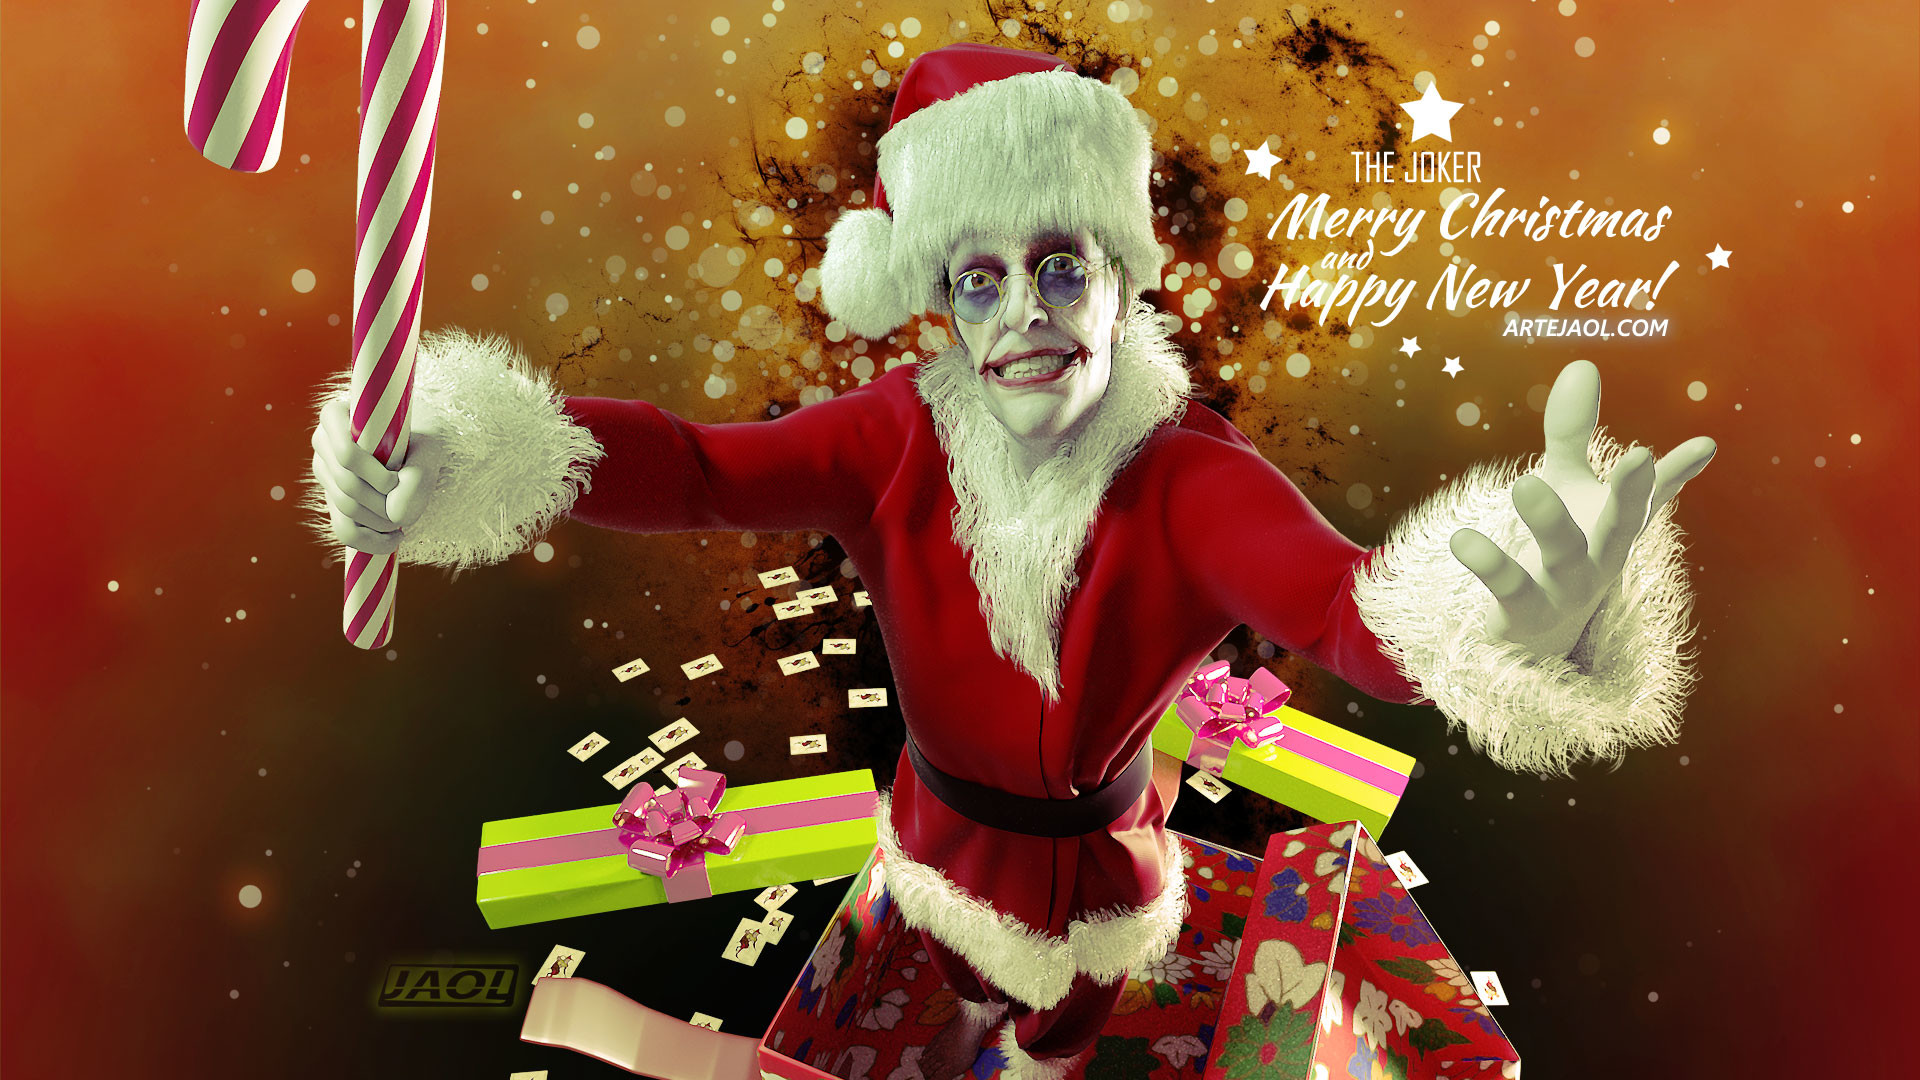 ArtStation - The Joker on Christmas, Jesus Olmos